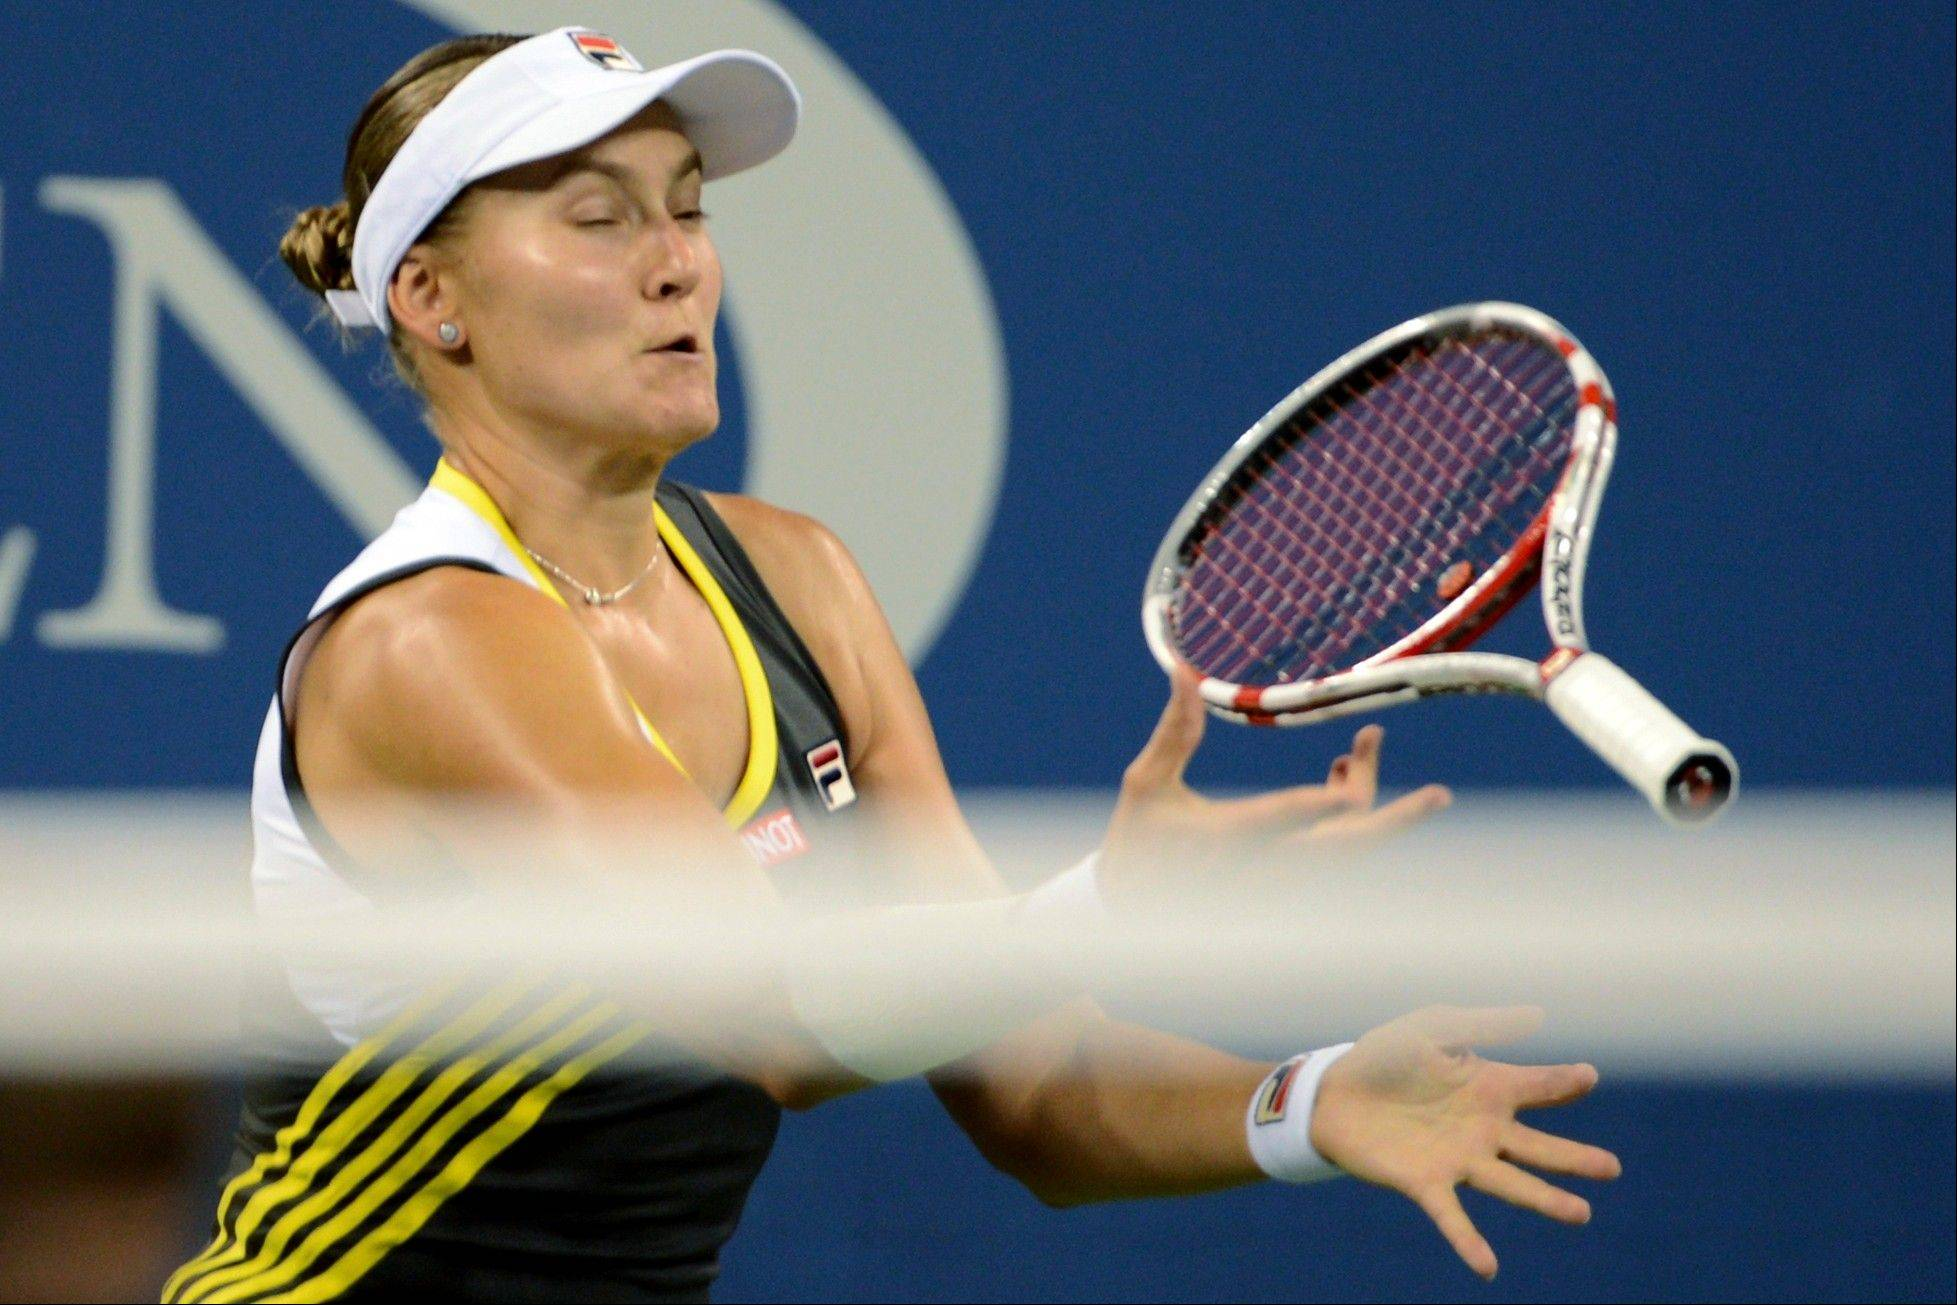 Nadia Petrova, of Russia, catches her racquet after throwing it in the air during her fourth-round match against Maria Sharapova, of Russia, at the U.S. Open tennis tournament, Sunday, Sept. 2, 2012, in New York. Sharapova won 6-1, 4-6, 6-4.